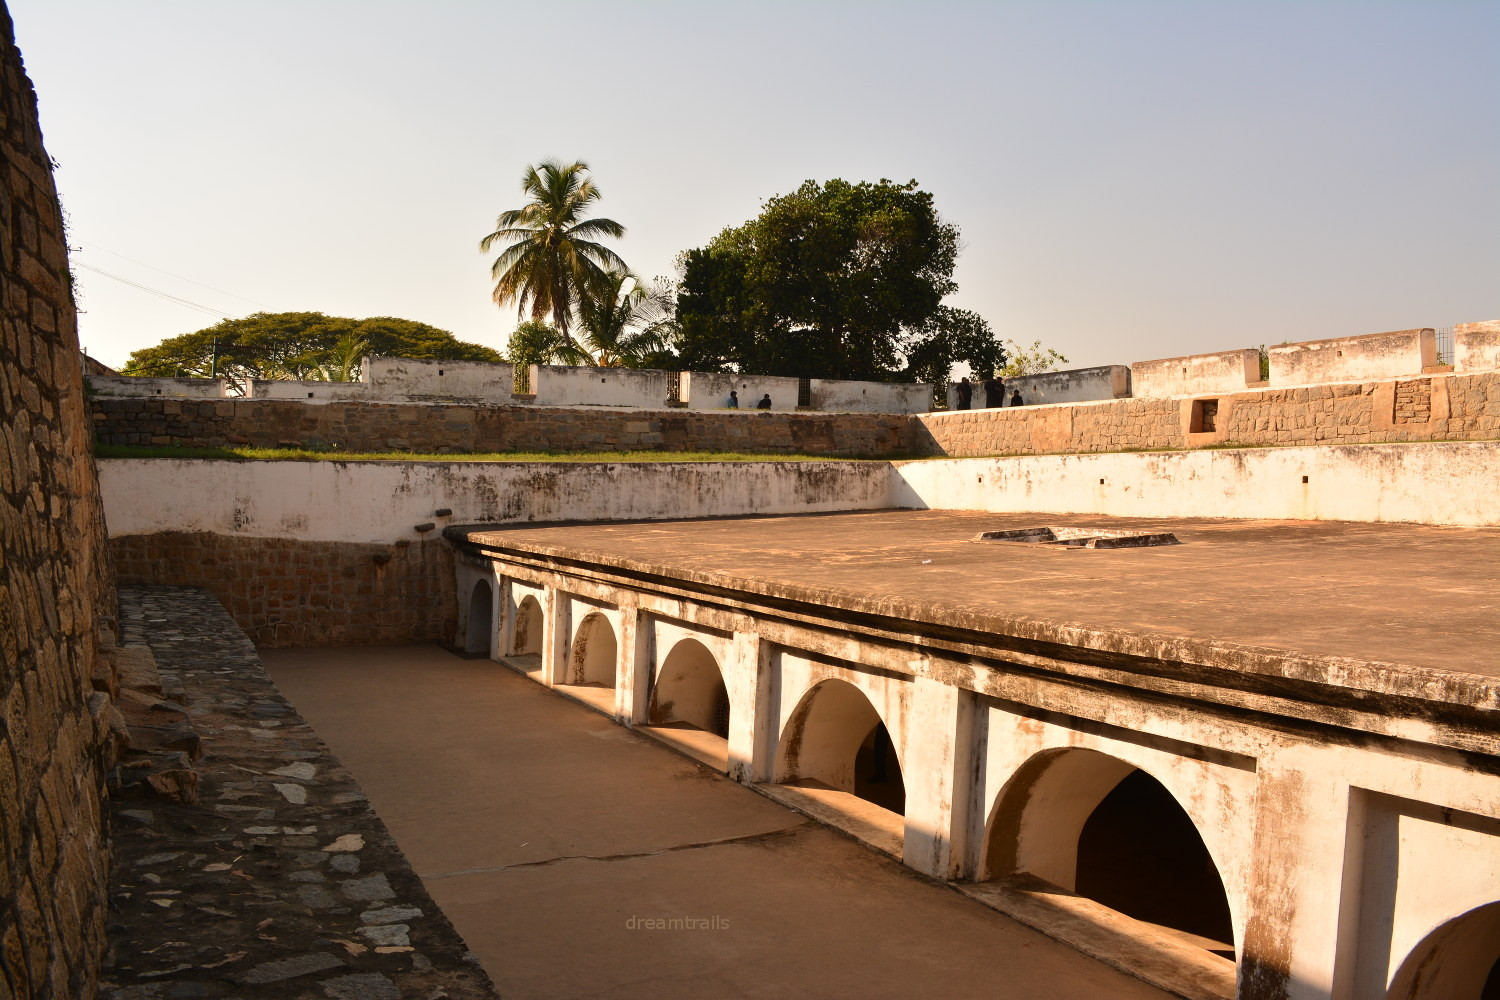 Colonel Bailey's Dungeon, Srirangapatna, Karnataka, India